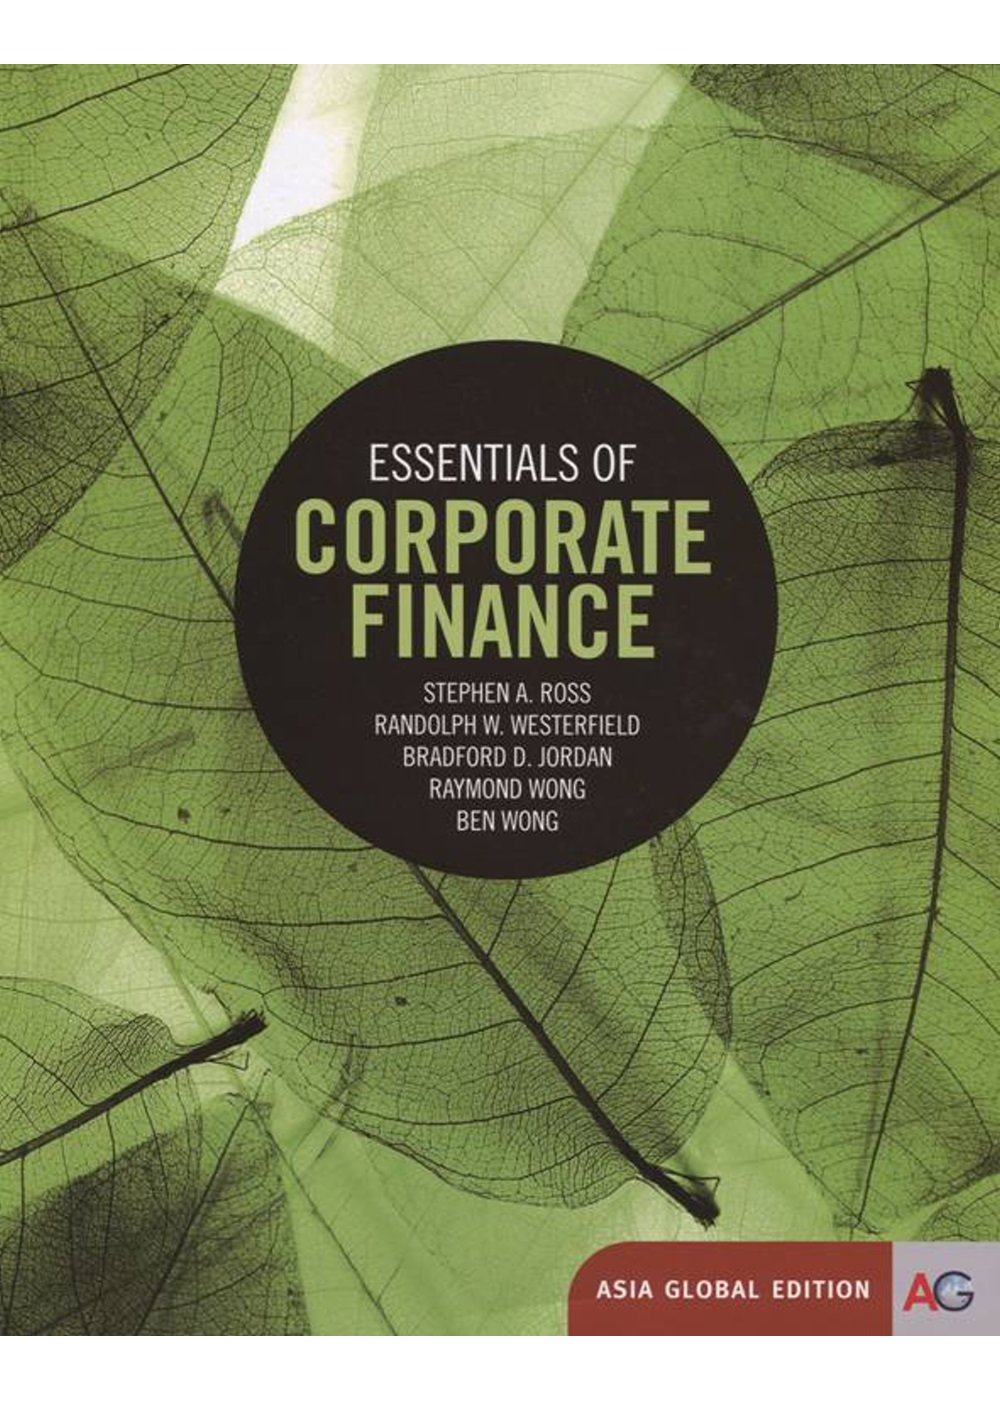 Essentials of Corporate Finance (Asia Global Edition)